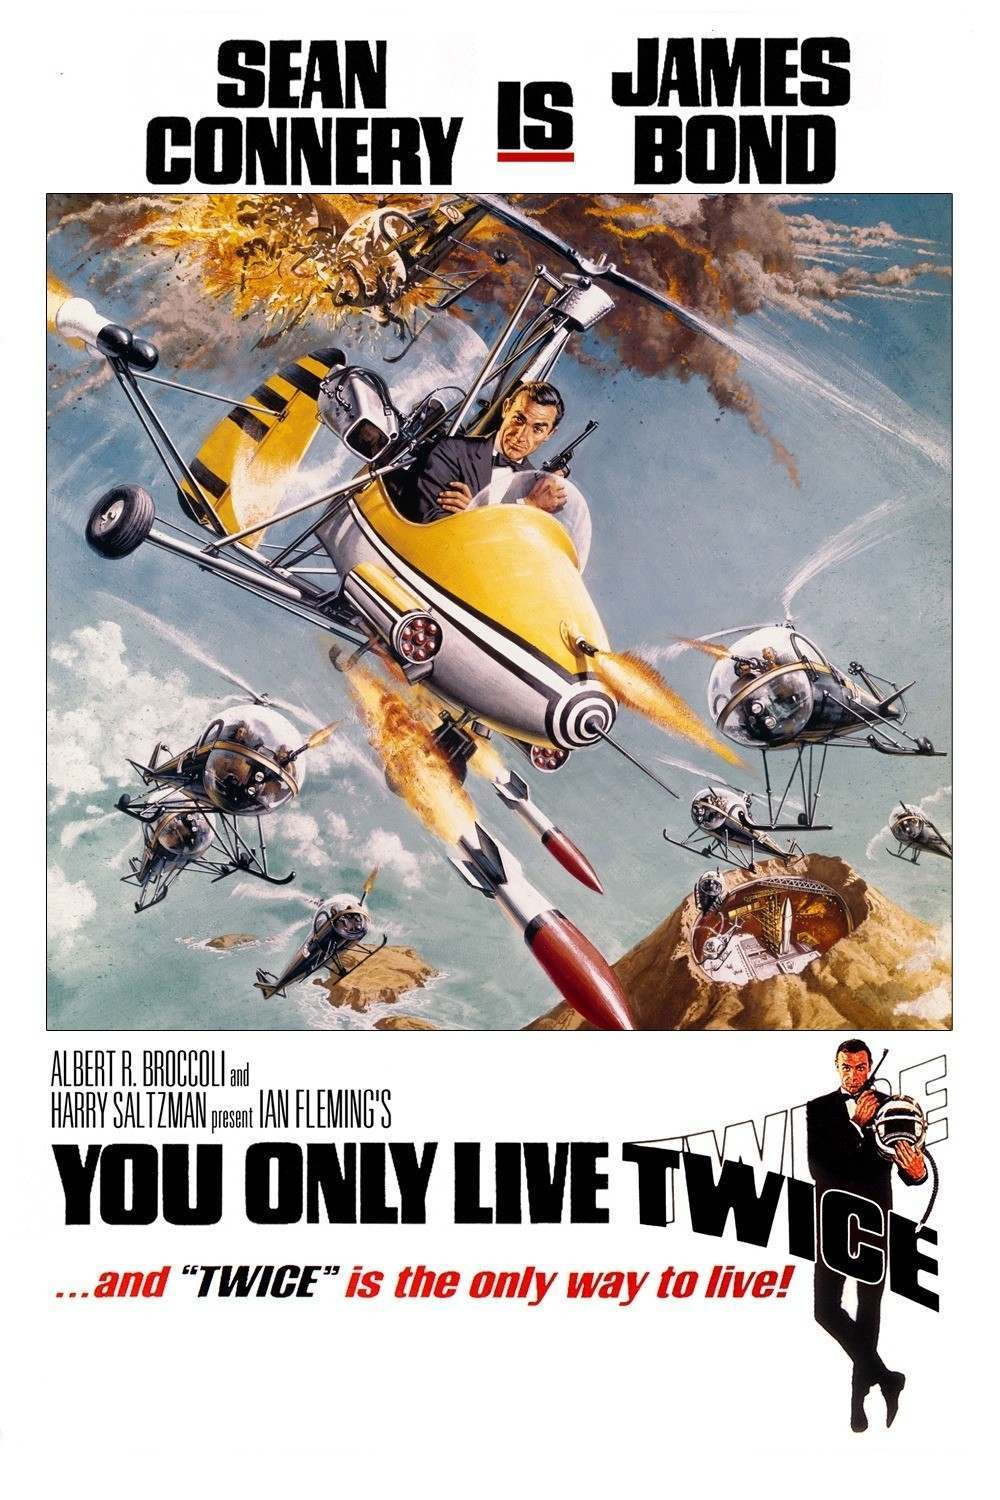 Sean Connery is James Bond You Only Live Twice poster